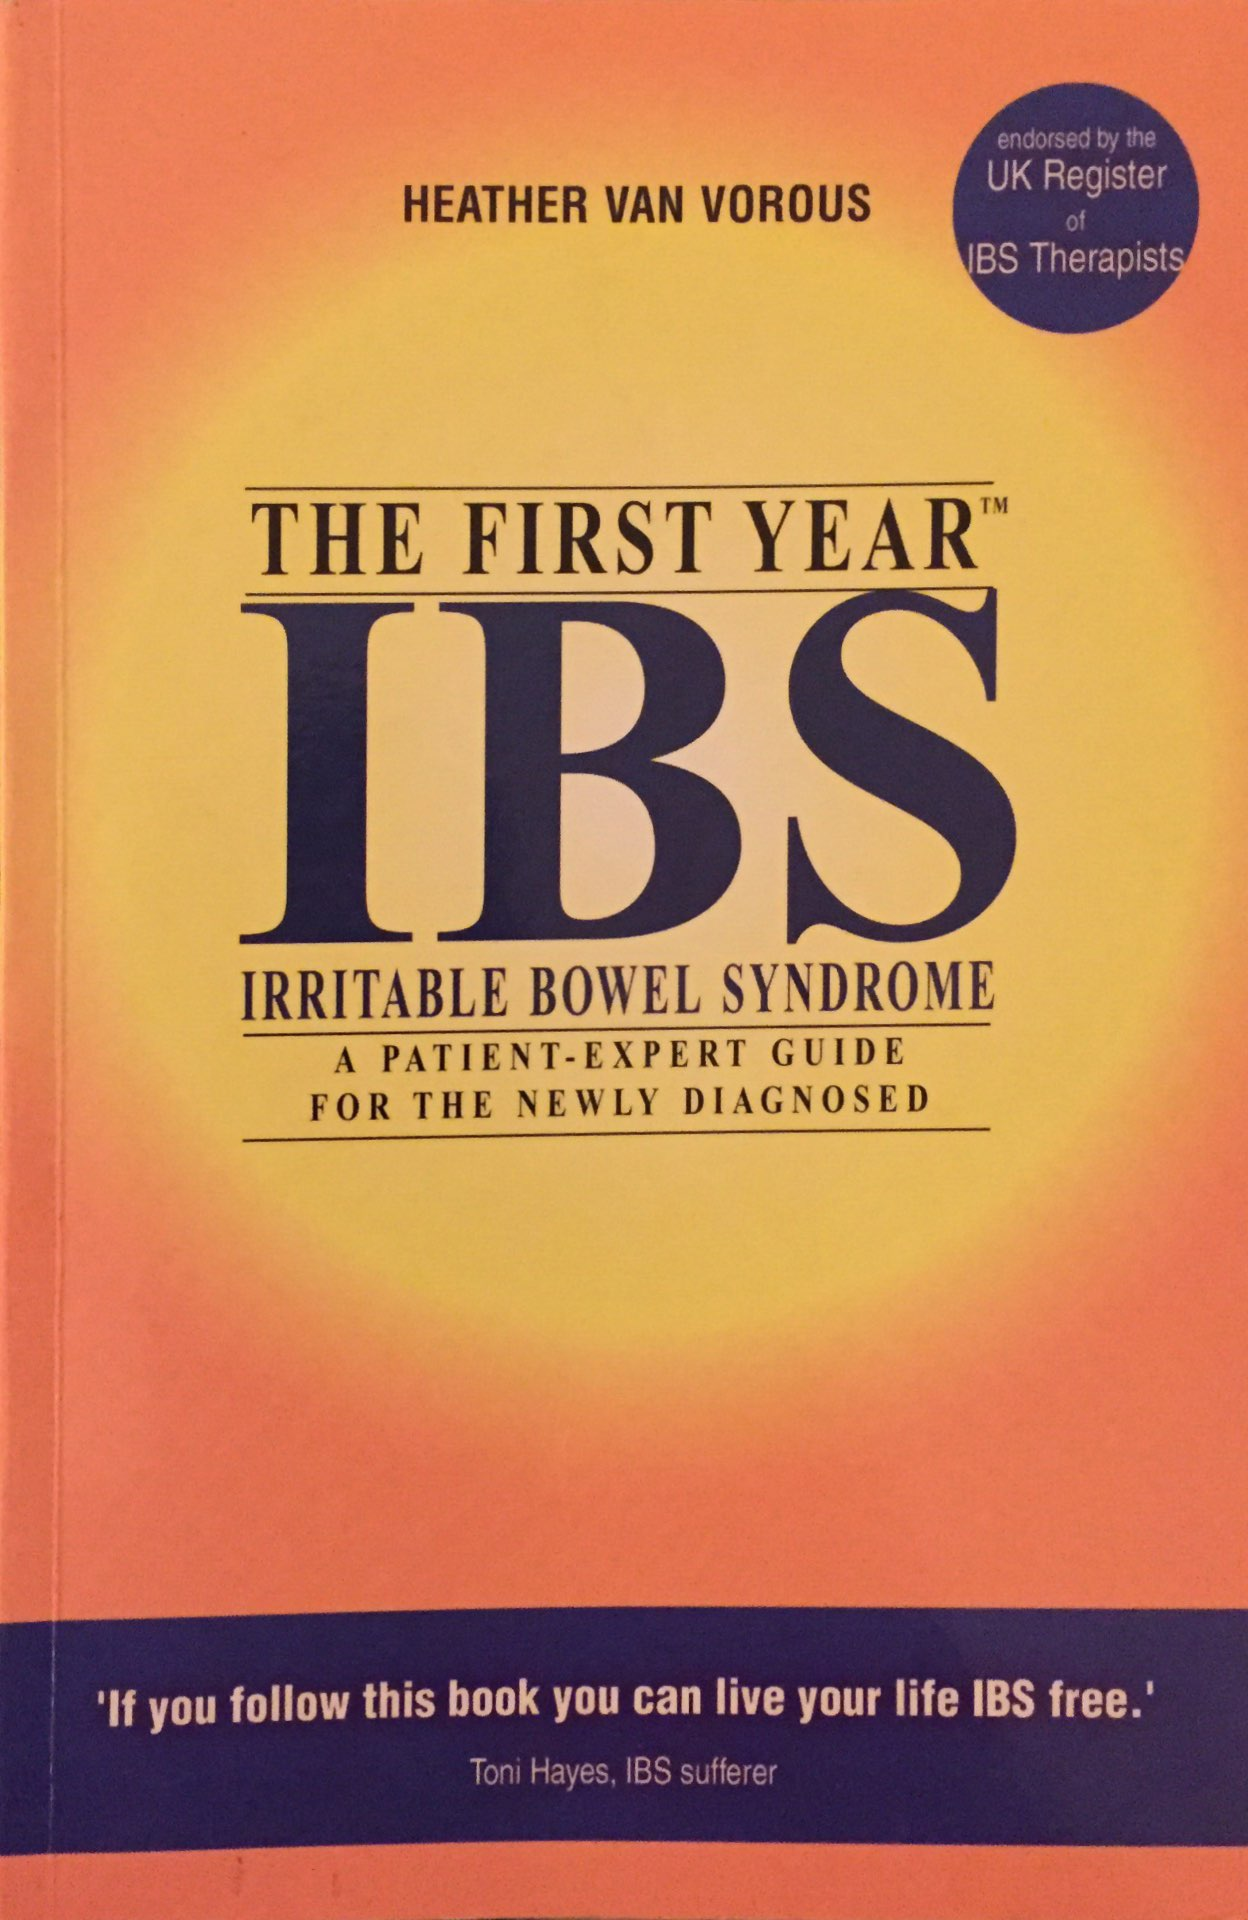 The First Year IBS IRRITABLE BOWEL SYNDROME A Patient-expert Guide For The Newly Diagnosed